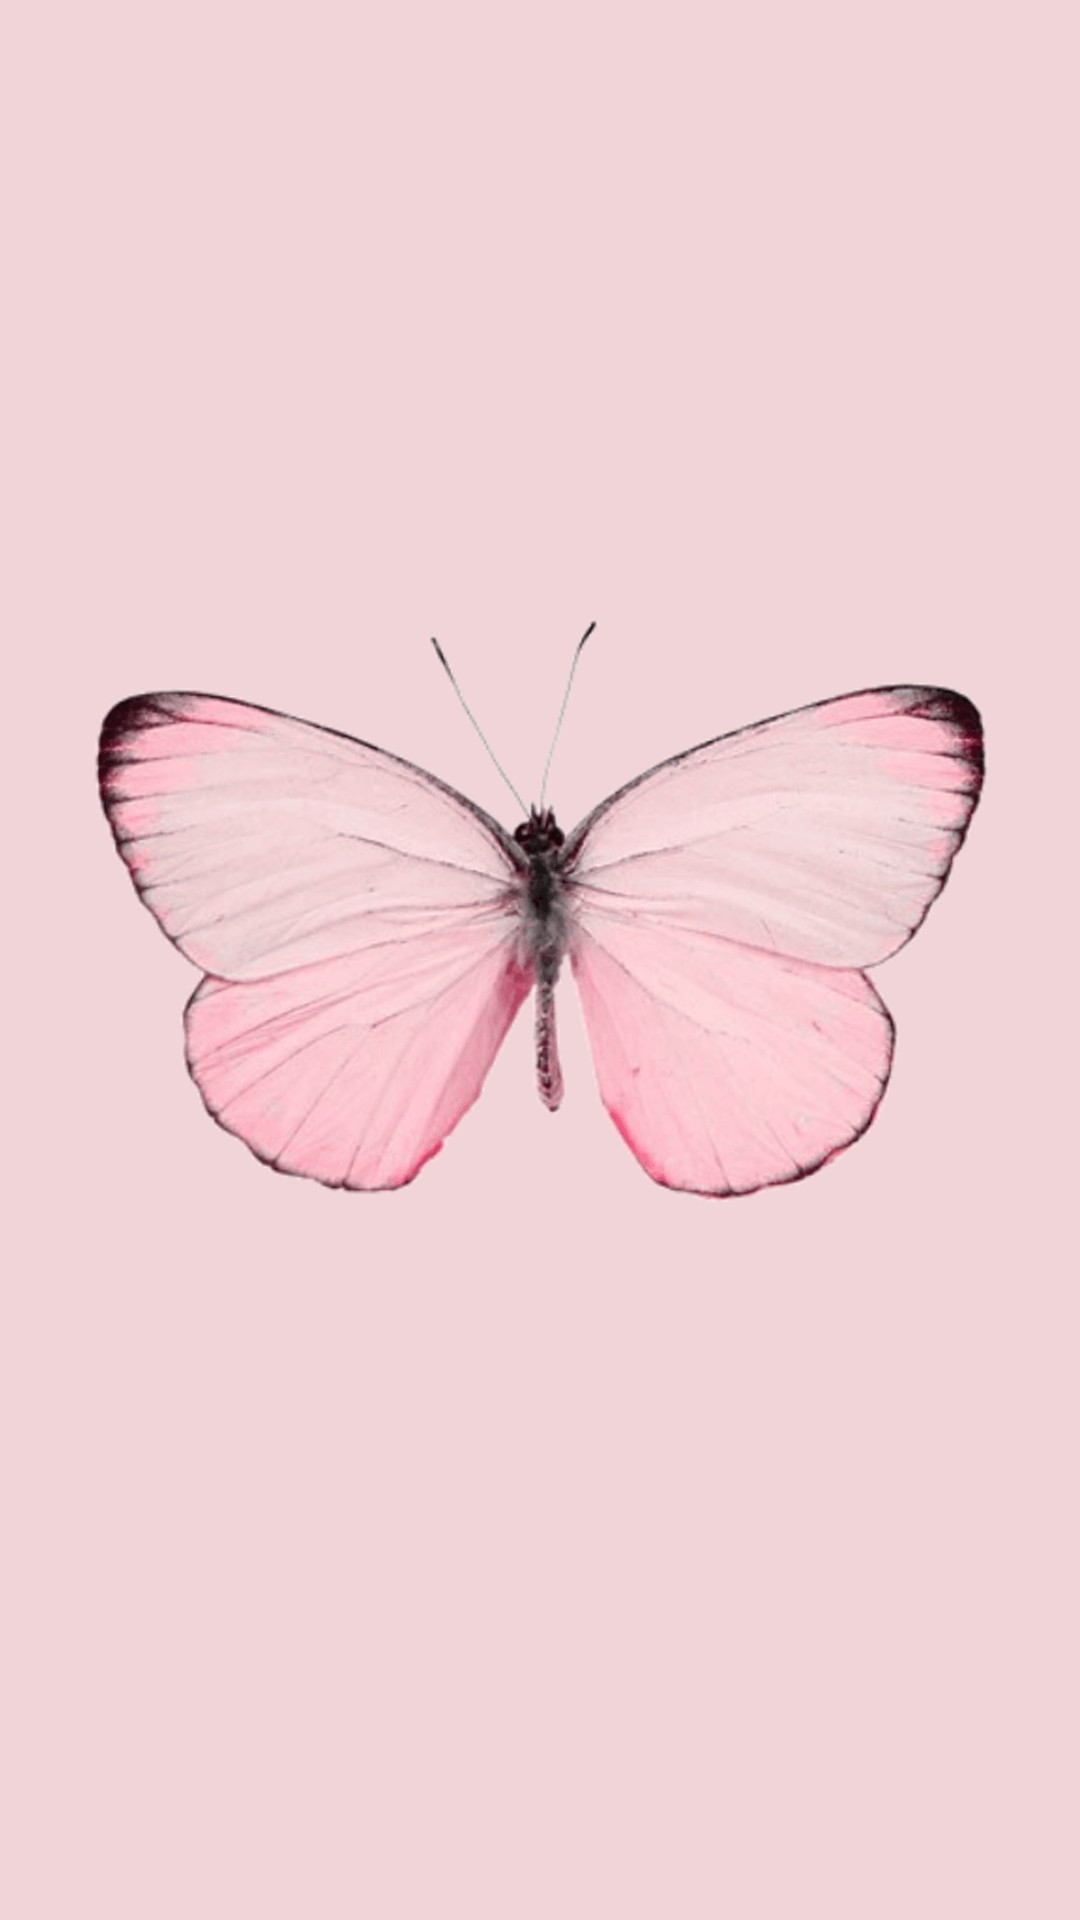 Aesthetic Butterfly iphone home screen wallpaper